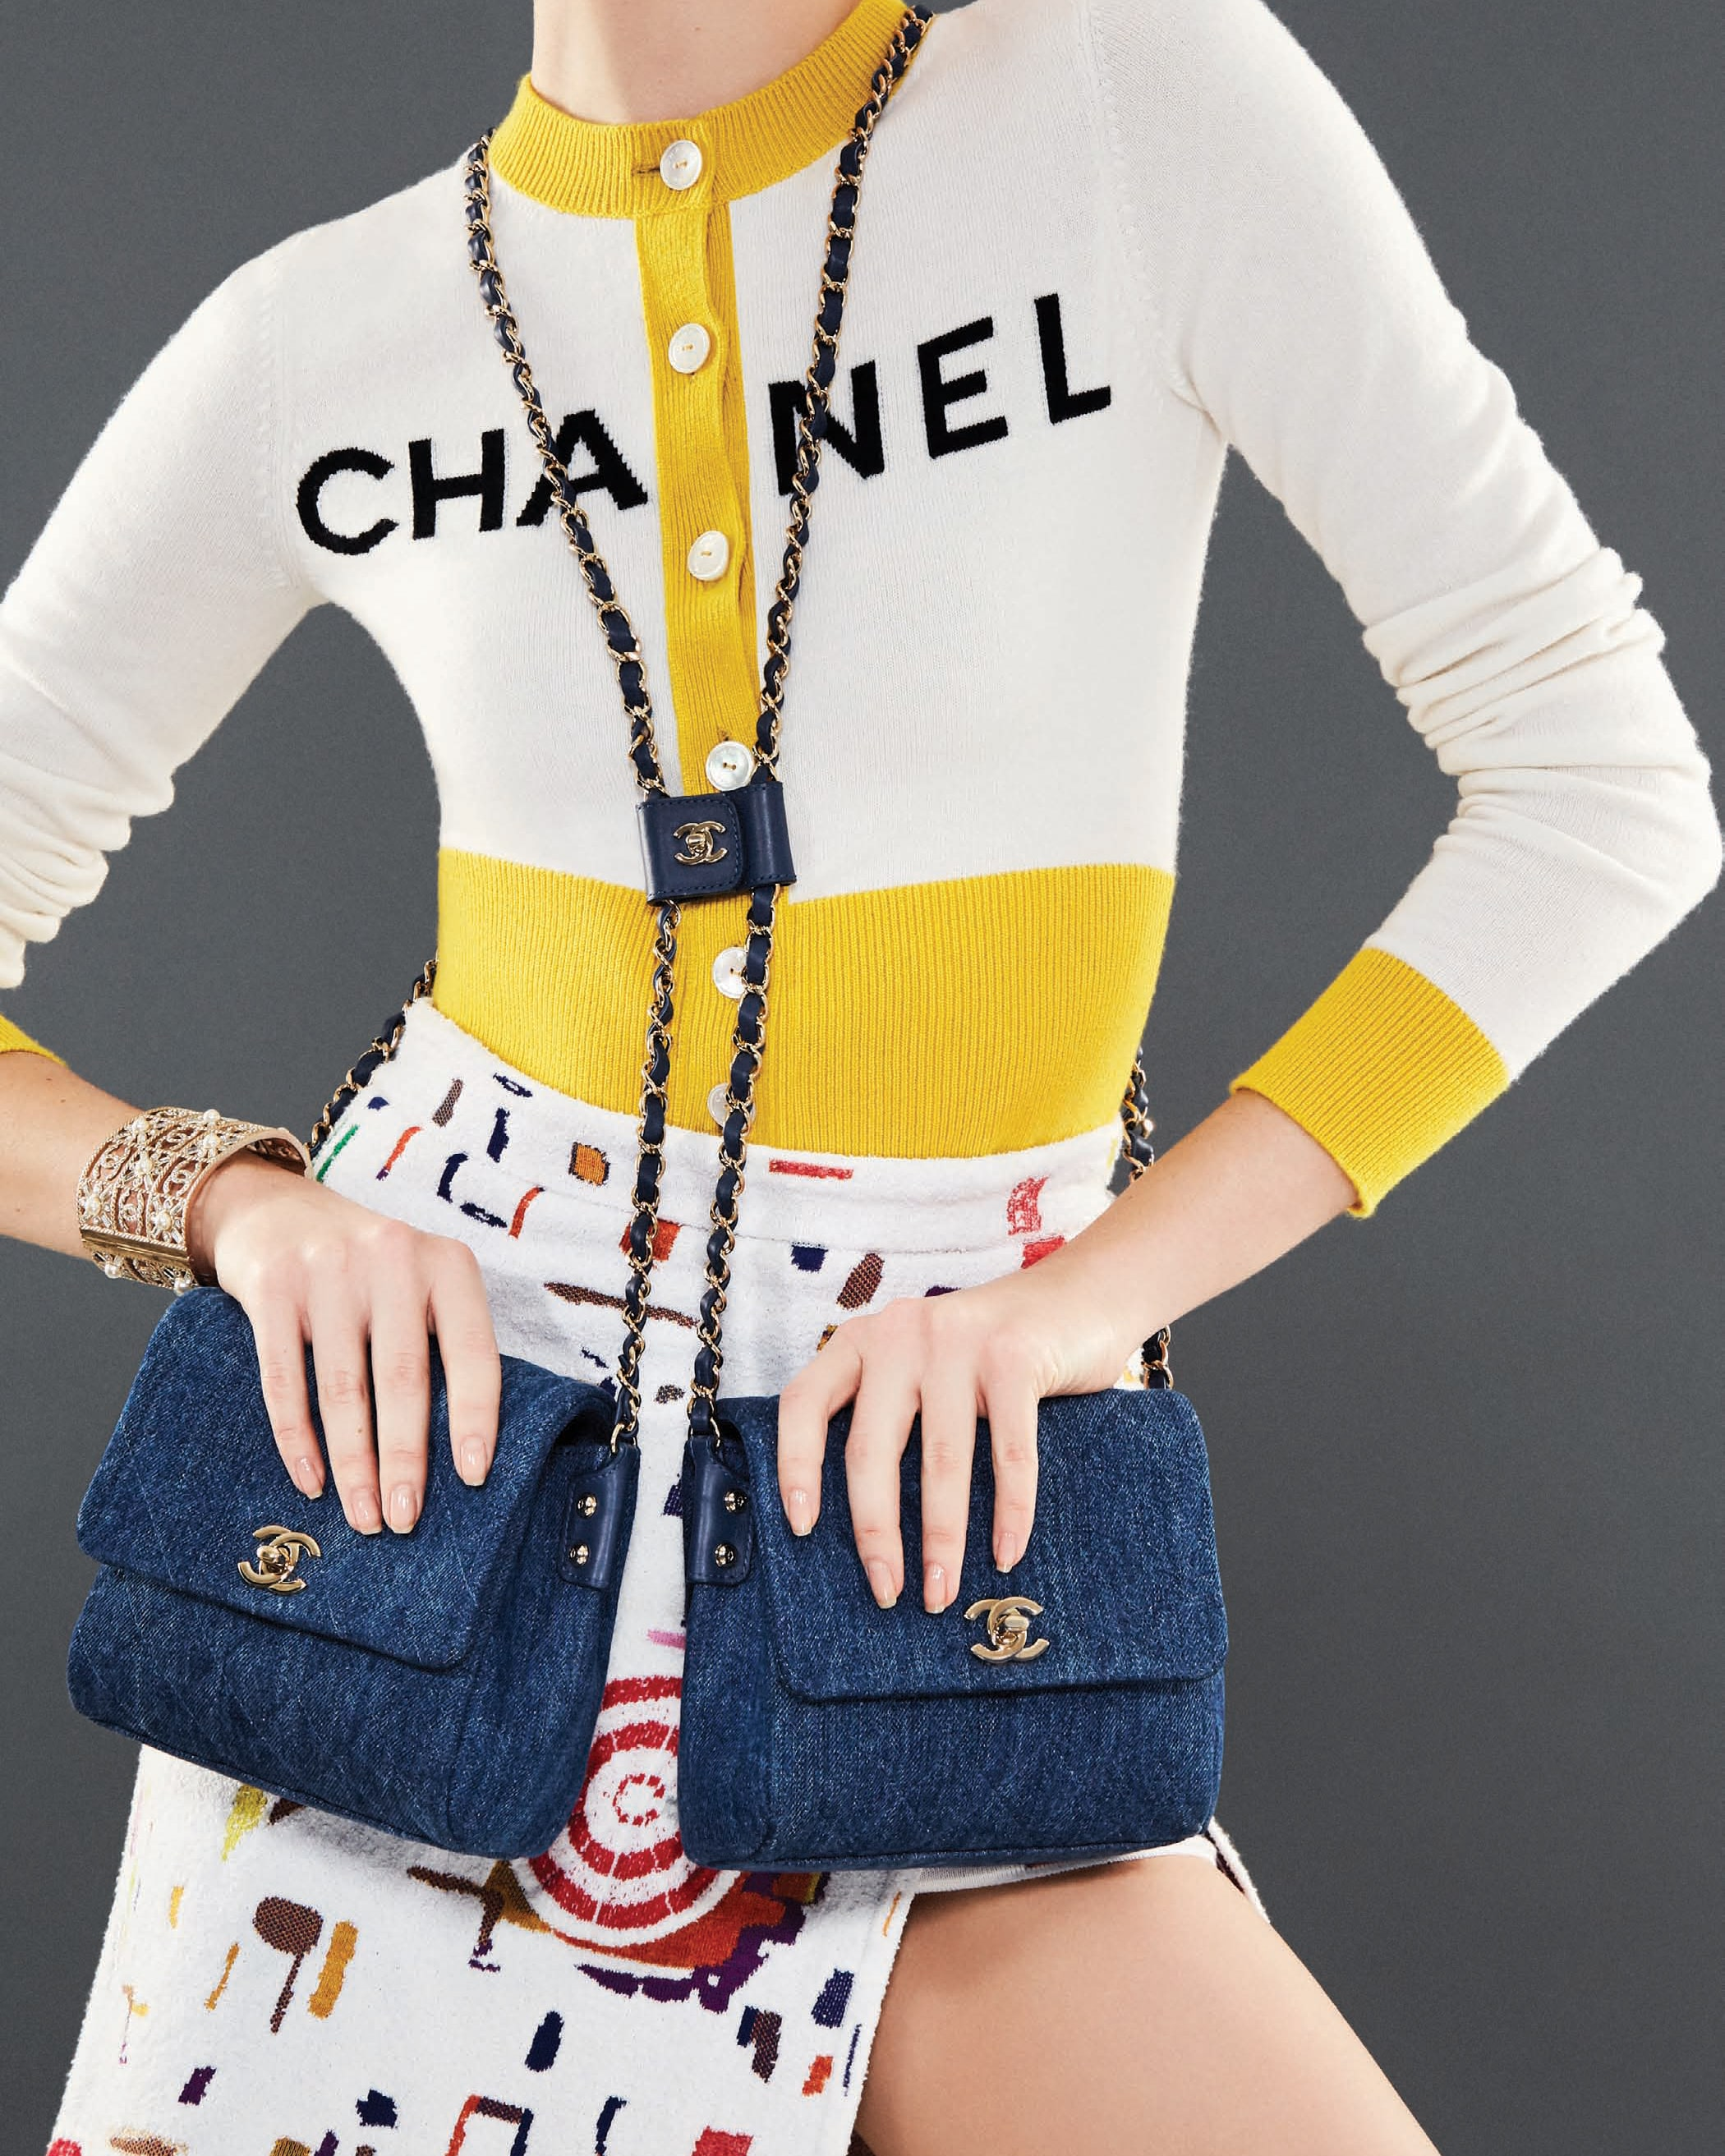 chanel-side-pack.jpg